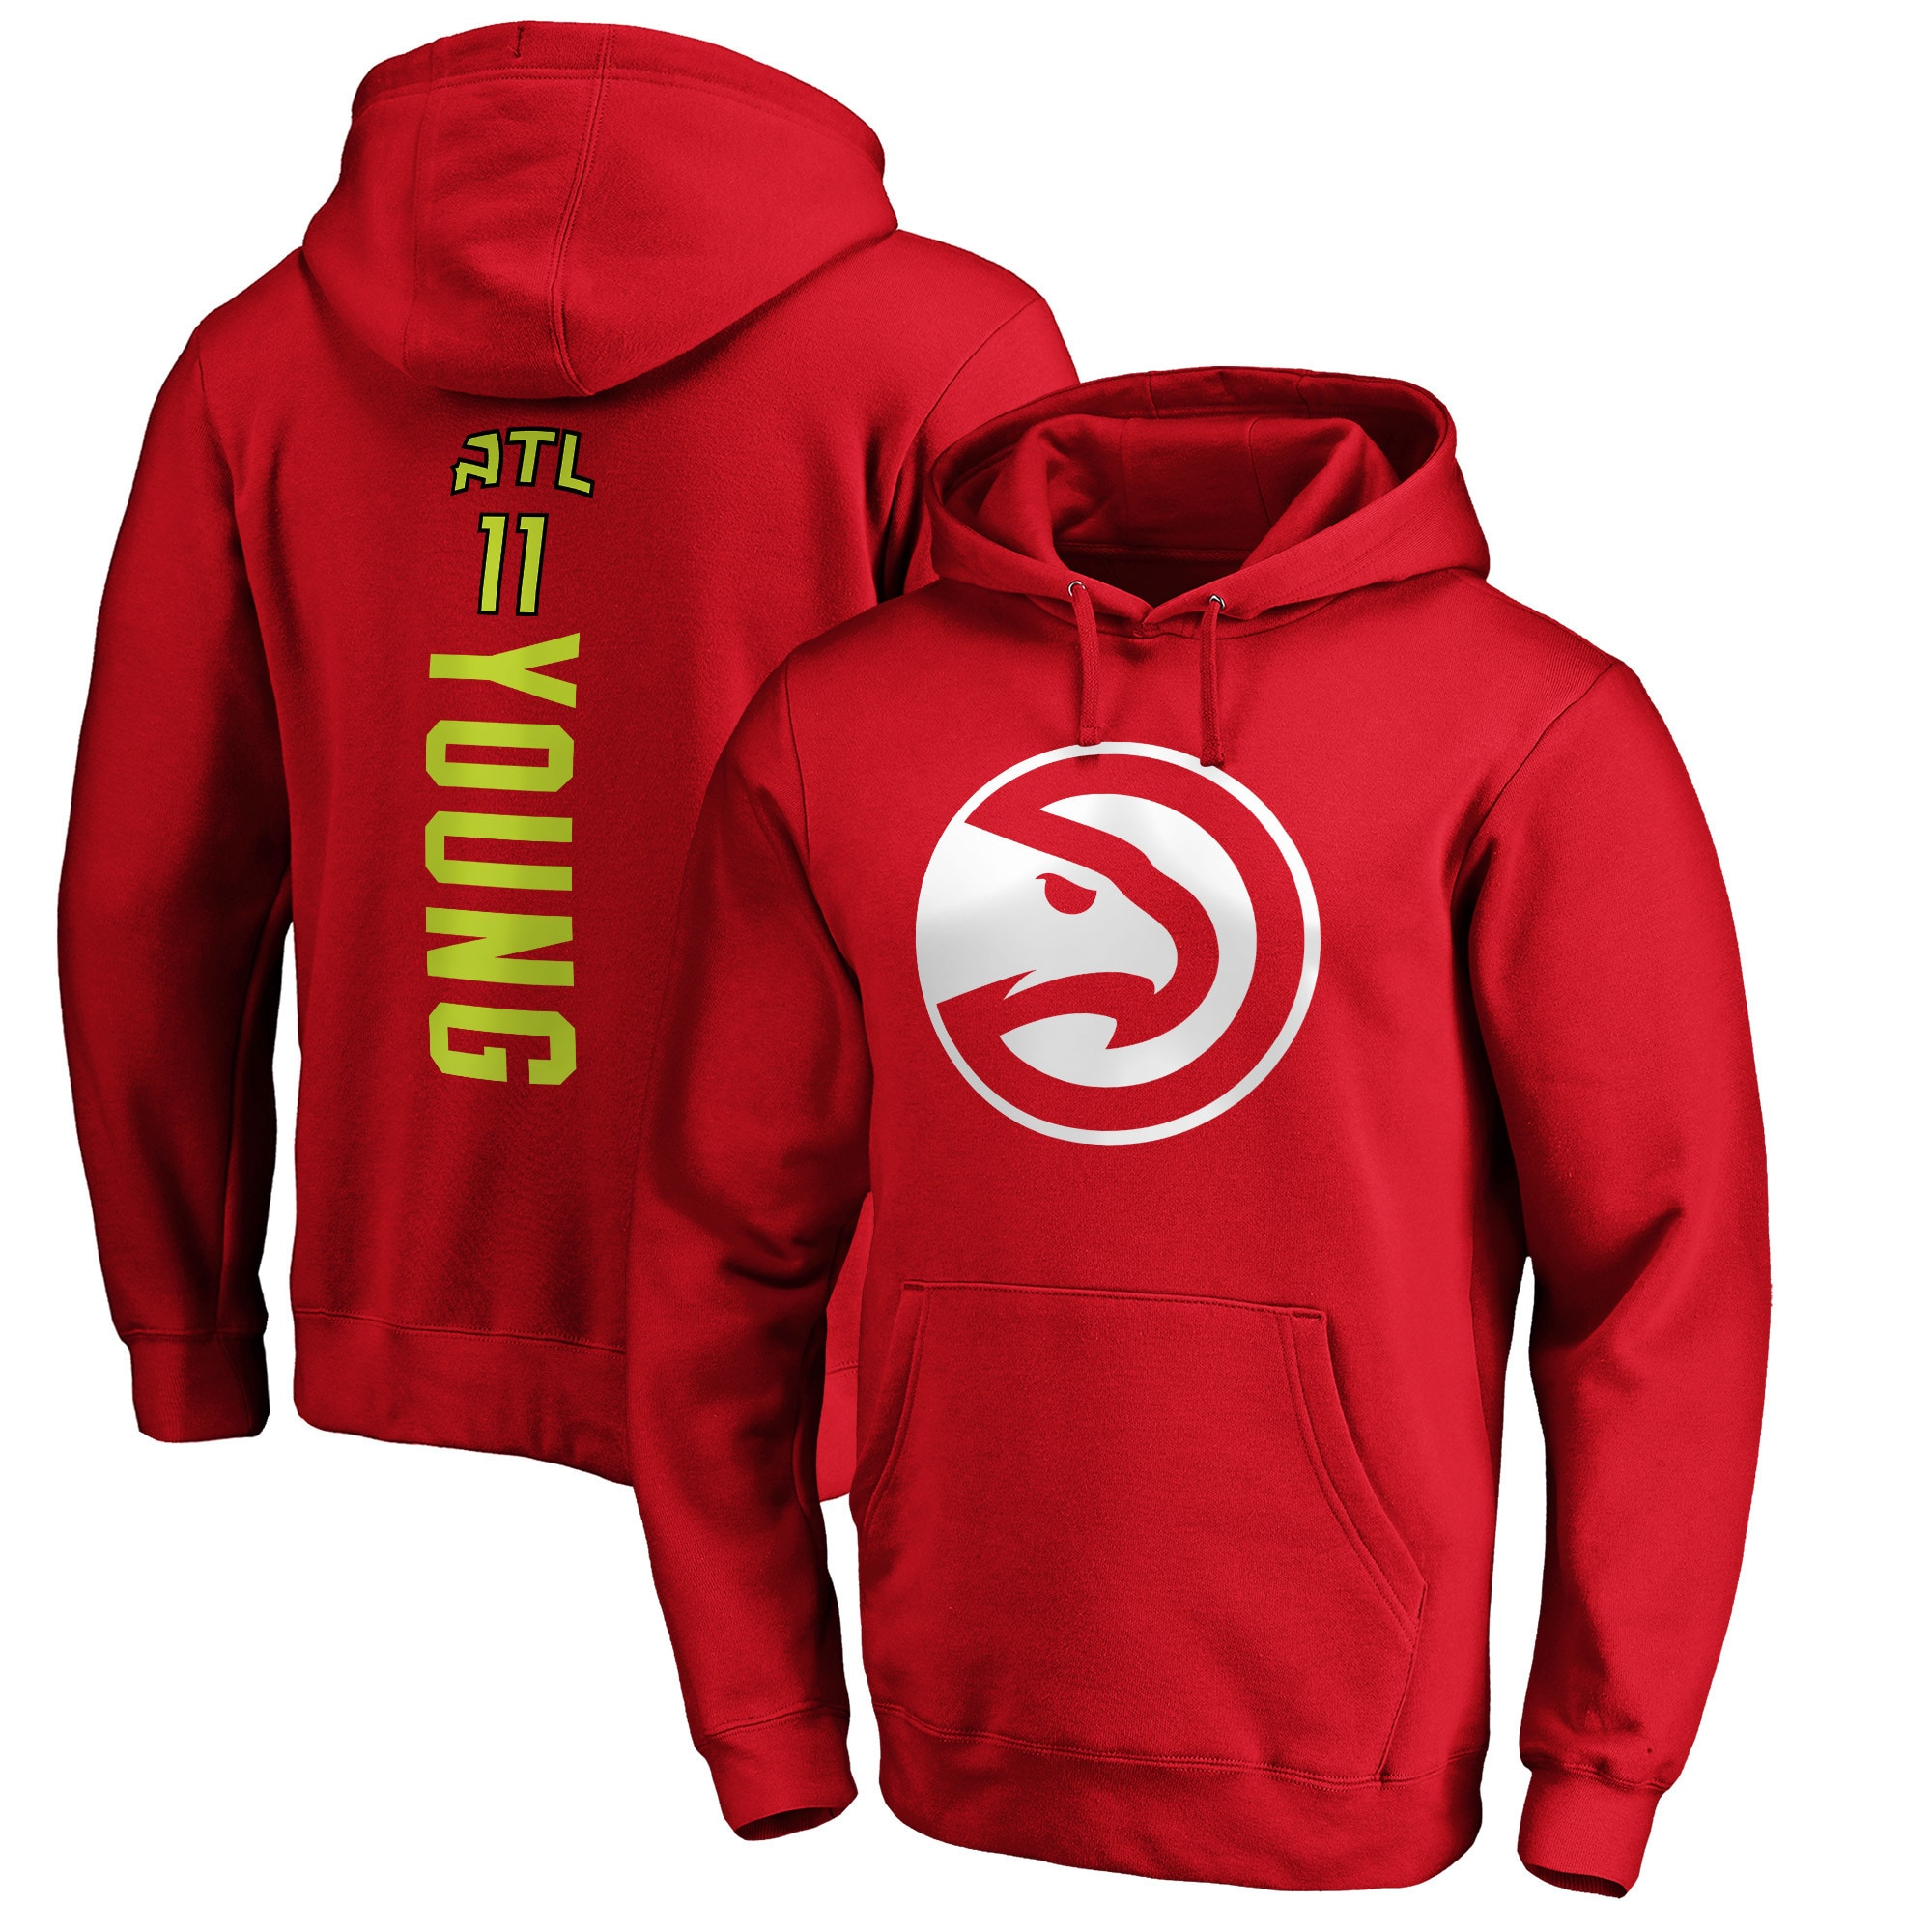 Trae Young Atlanta Hawks Fanatics Branded Team Playmaker Name & Number Pullover Hoodie - Red